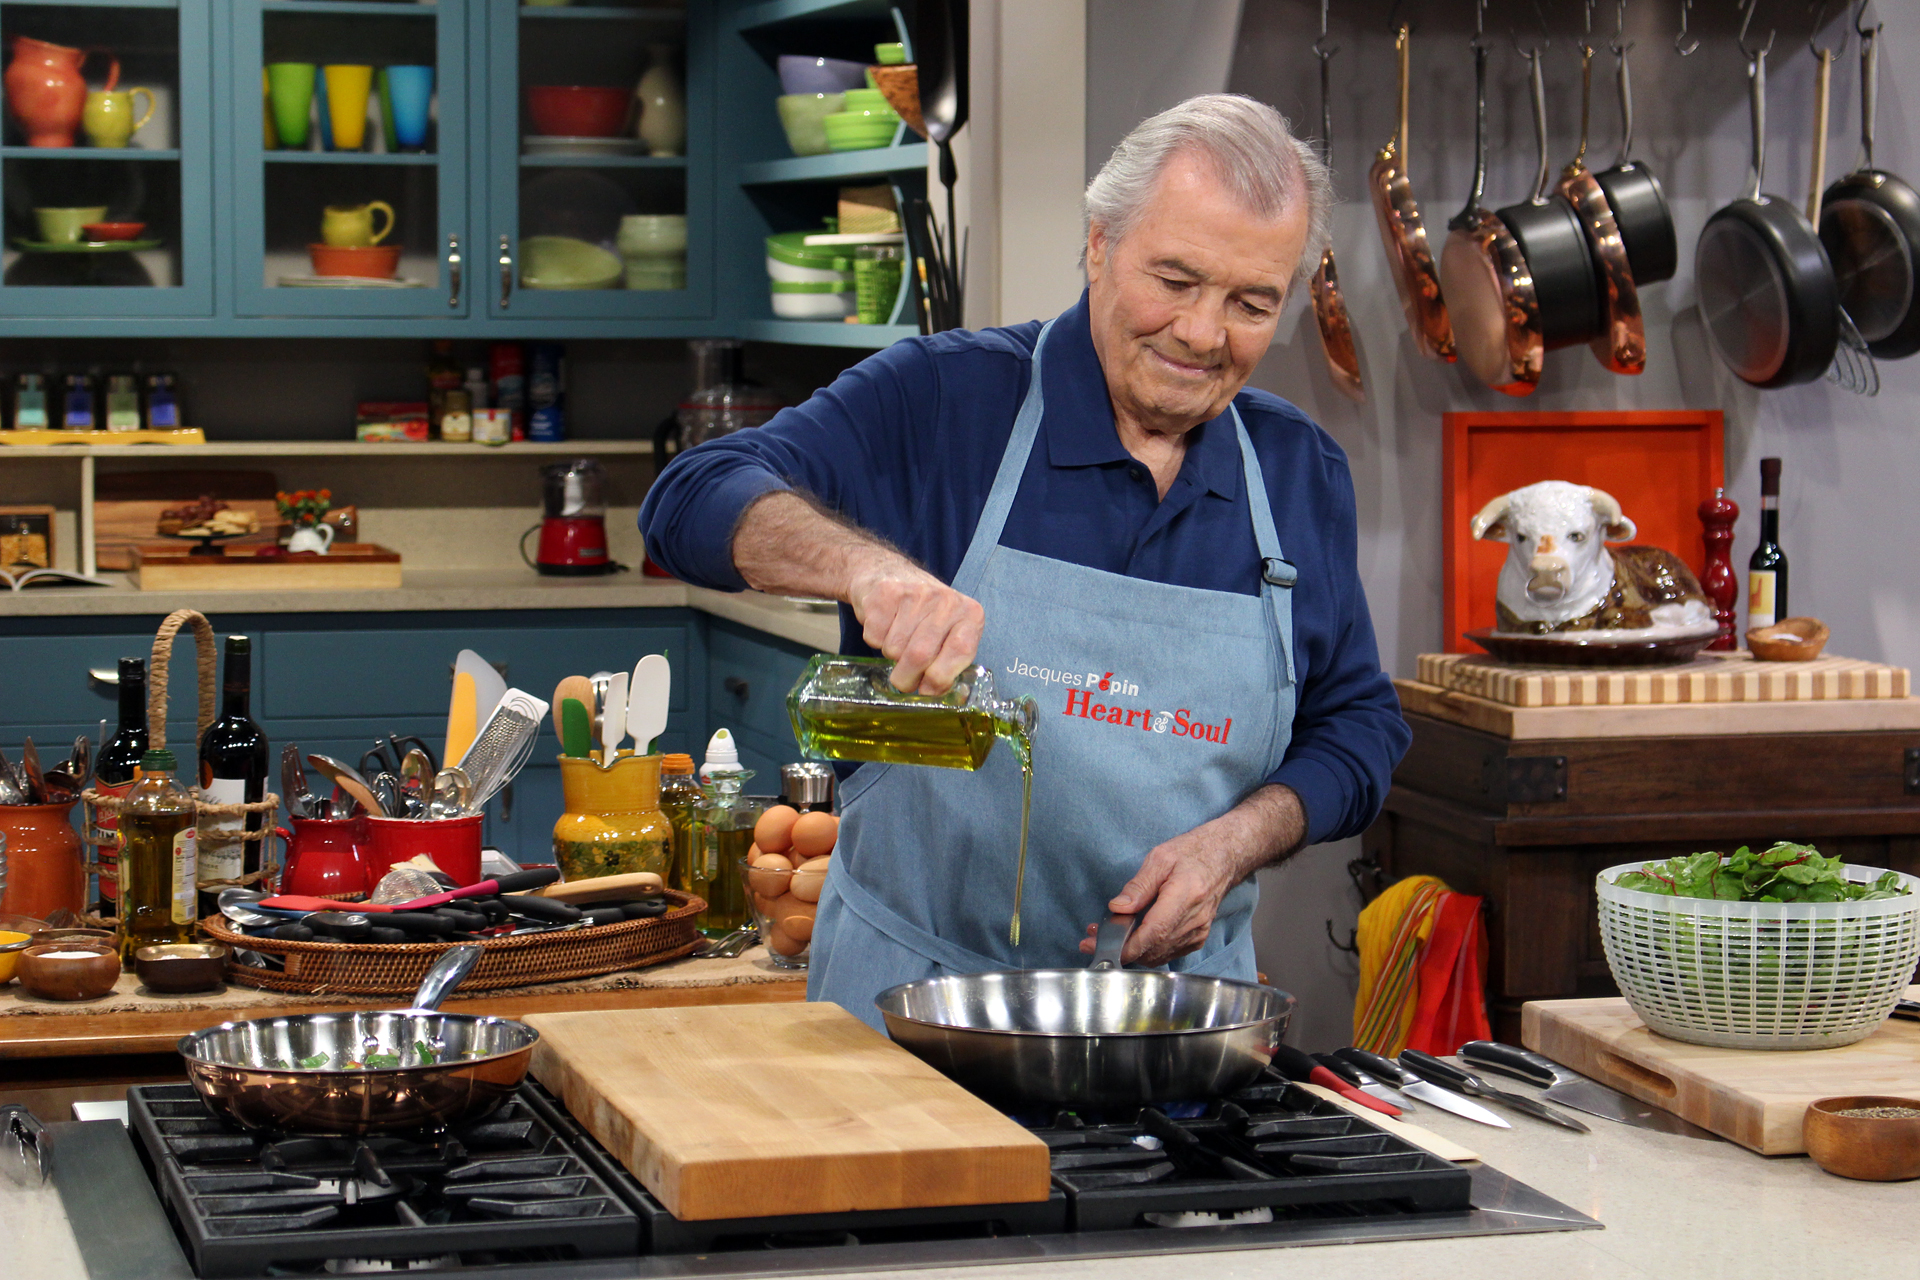 Jacques Pépin cooking on the set of Heart & Soul.